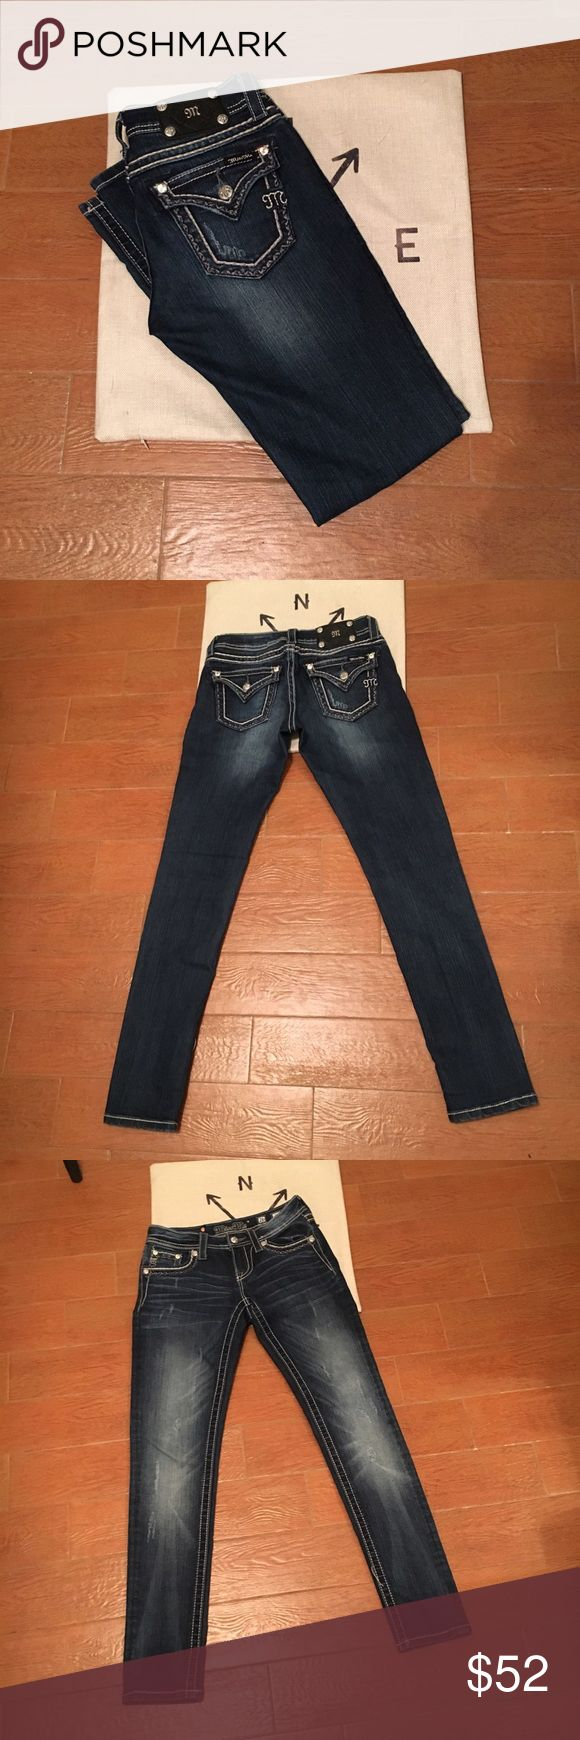 Miss Me Jeans Sz 26 Skinny Jeans Perfect Condition, only worn a few times. Inseam 32. Size 26. All gems intact! Lightly distressed. Miss Me Jeans Skinny